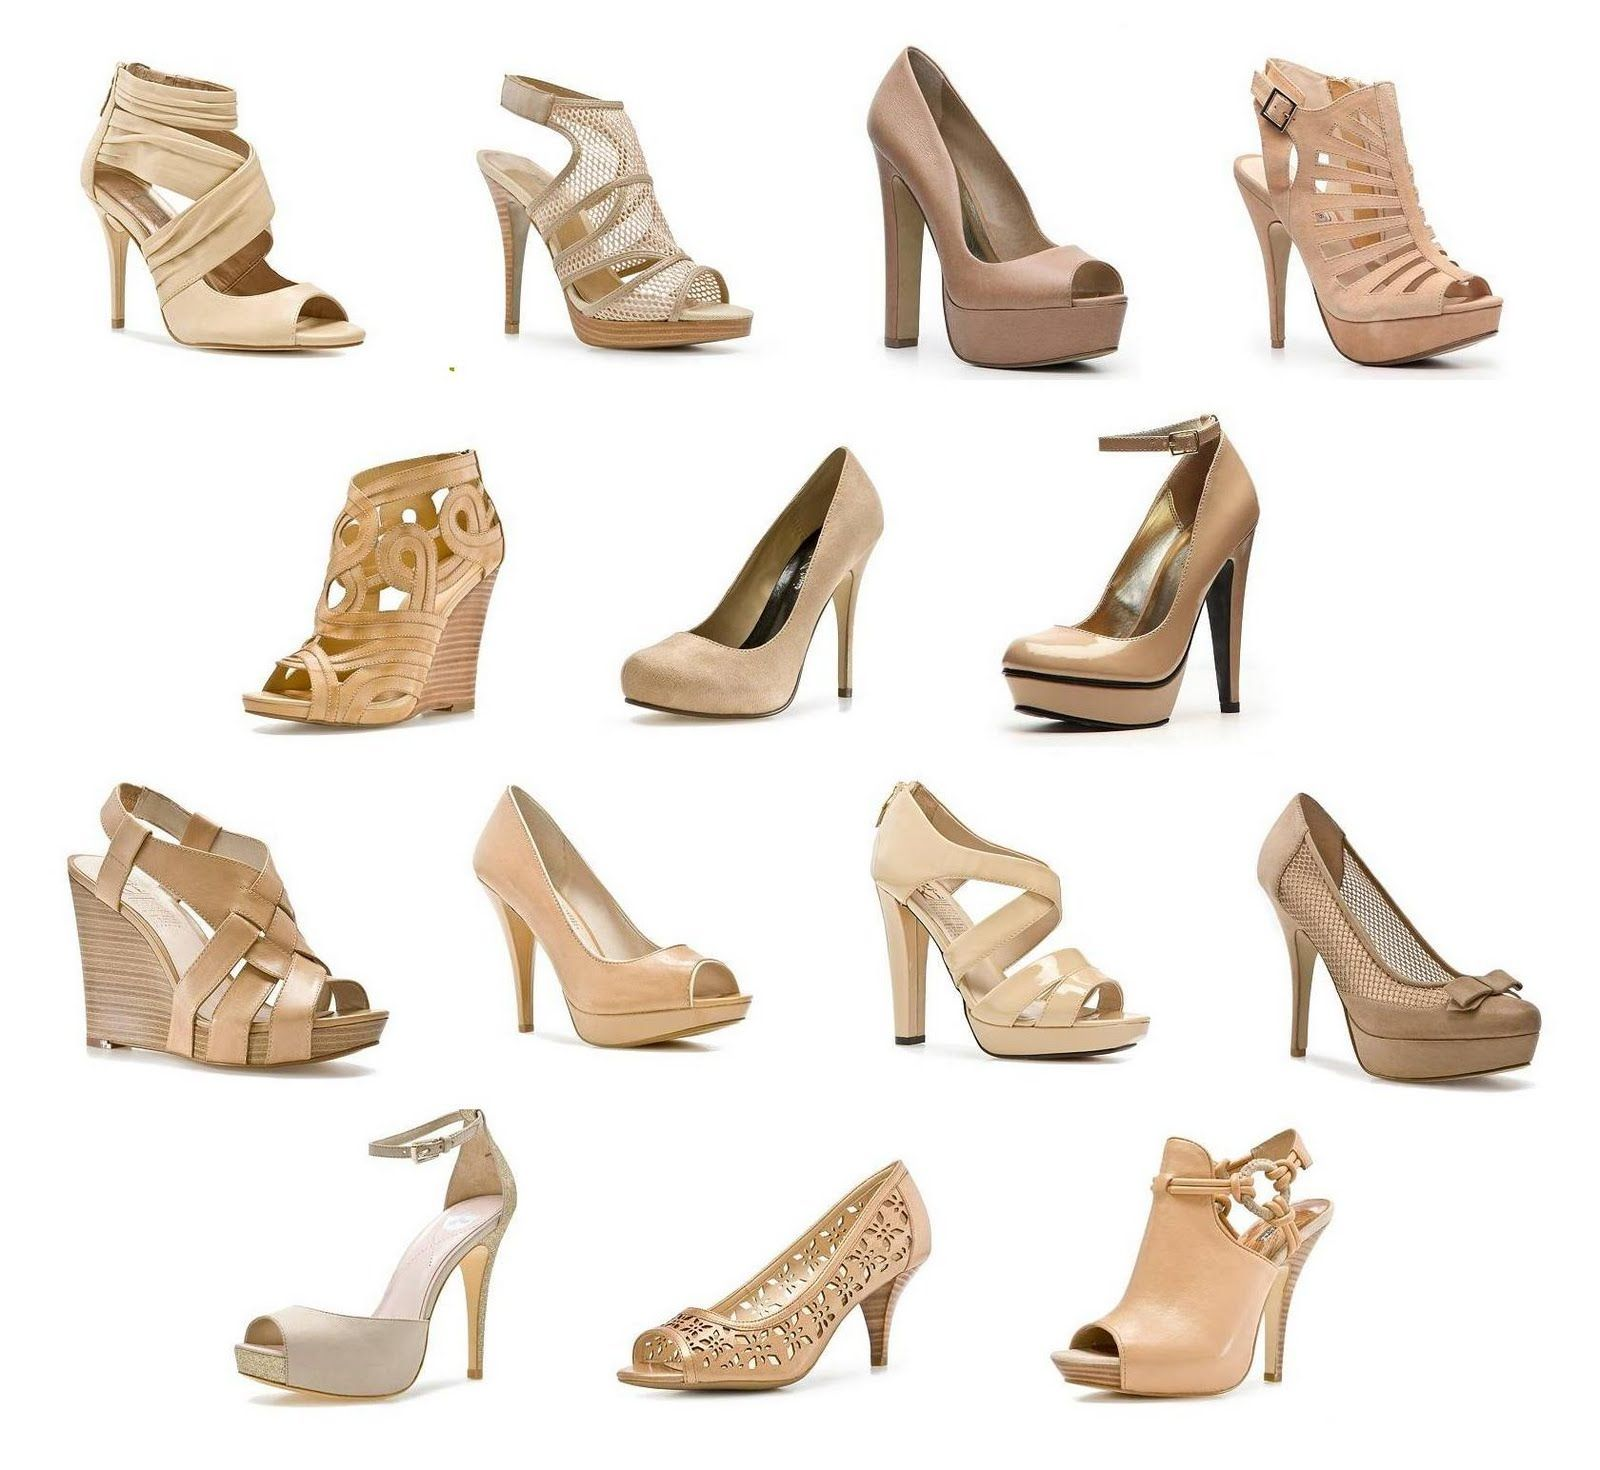 Nude Shoes Style I LOVE Pinterest